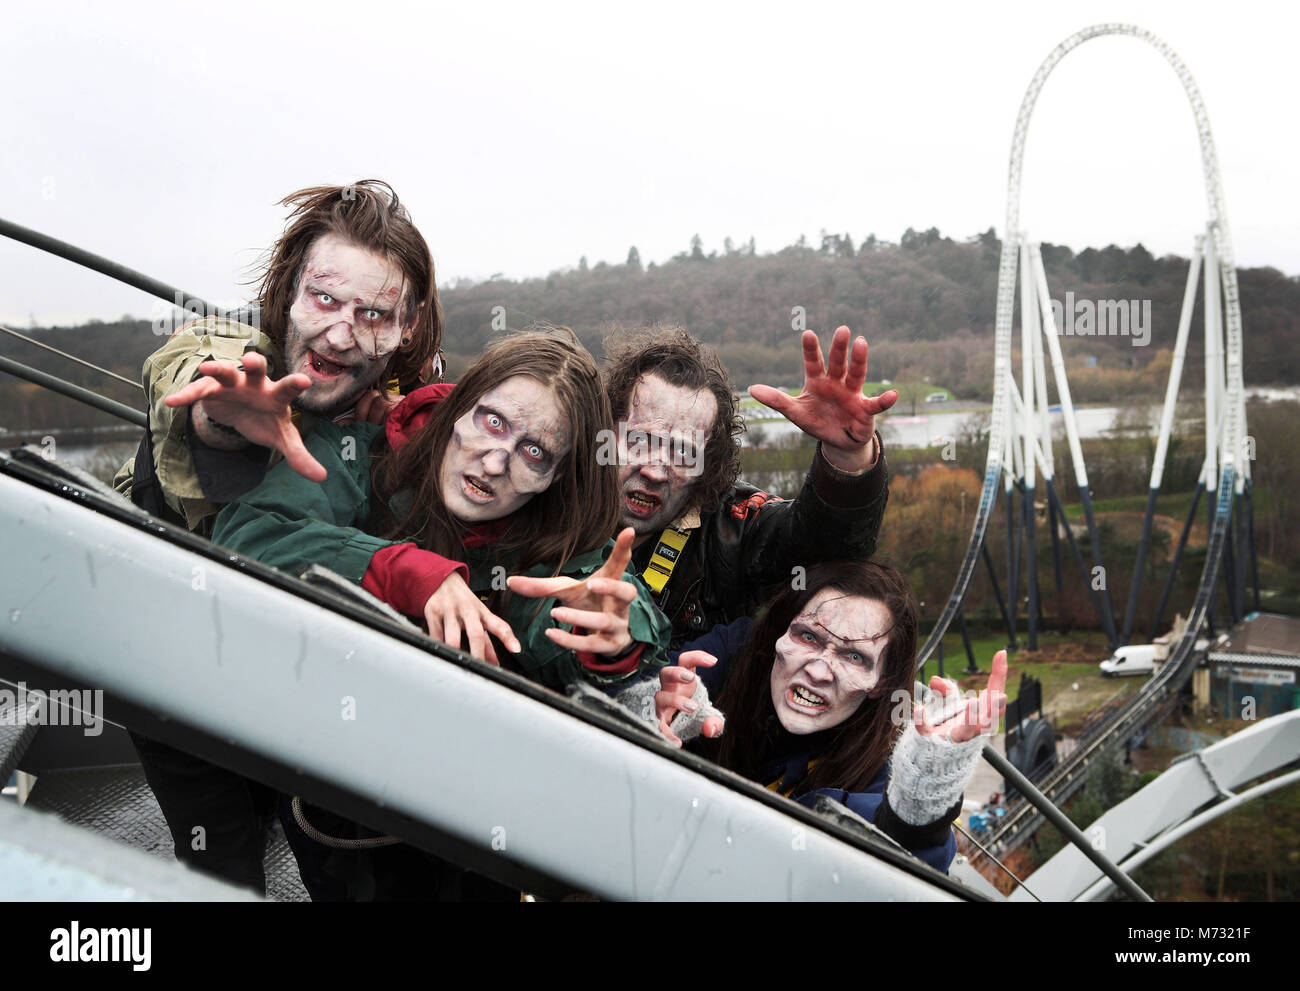 *** EMBARGOED TO 0001 Tuesday February 6 *** Scare actor candidates are auditioned at 127 feet in the air on The Stock Photo